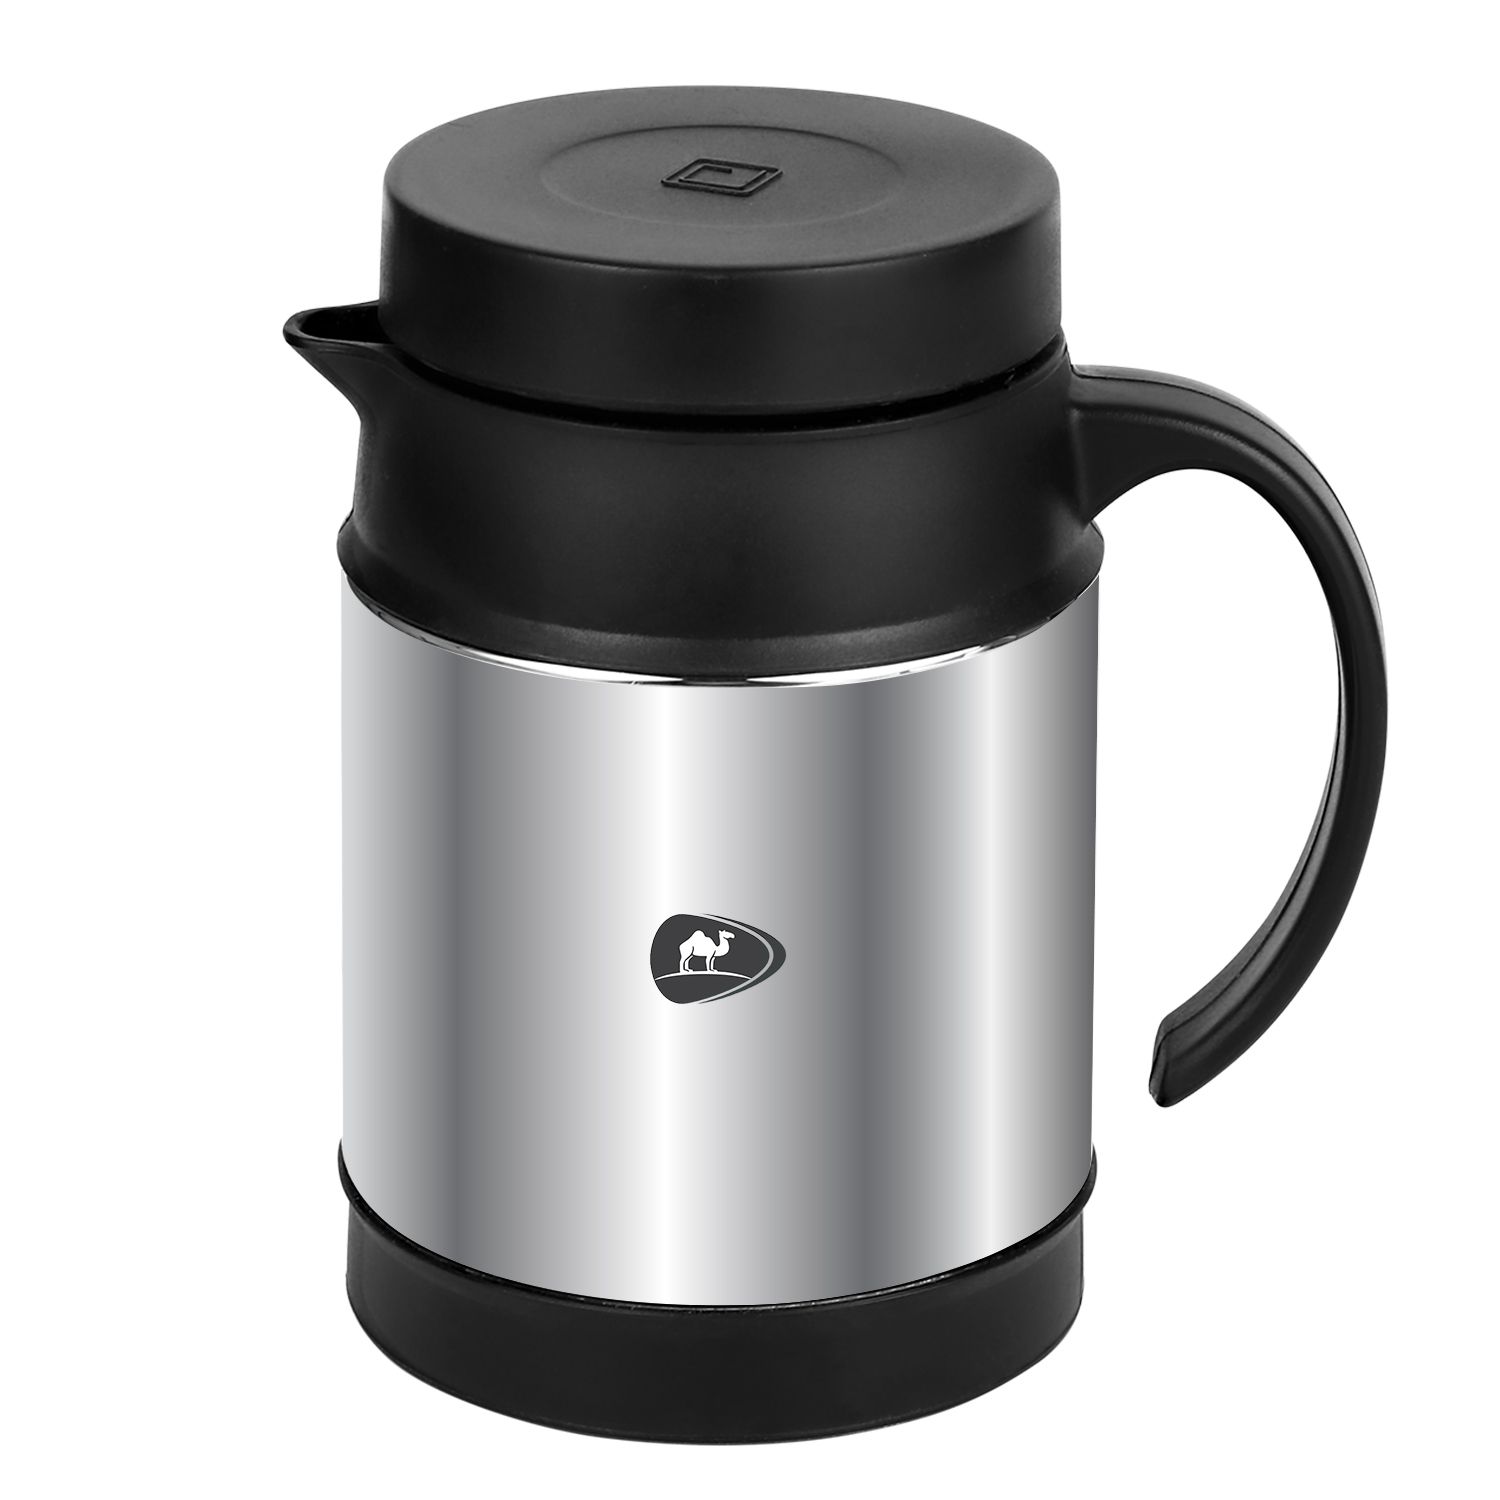 Stainless Steel Insulated Kettle